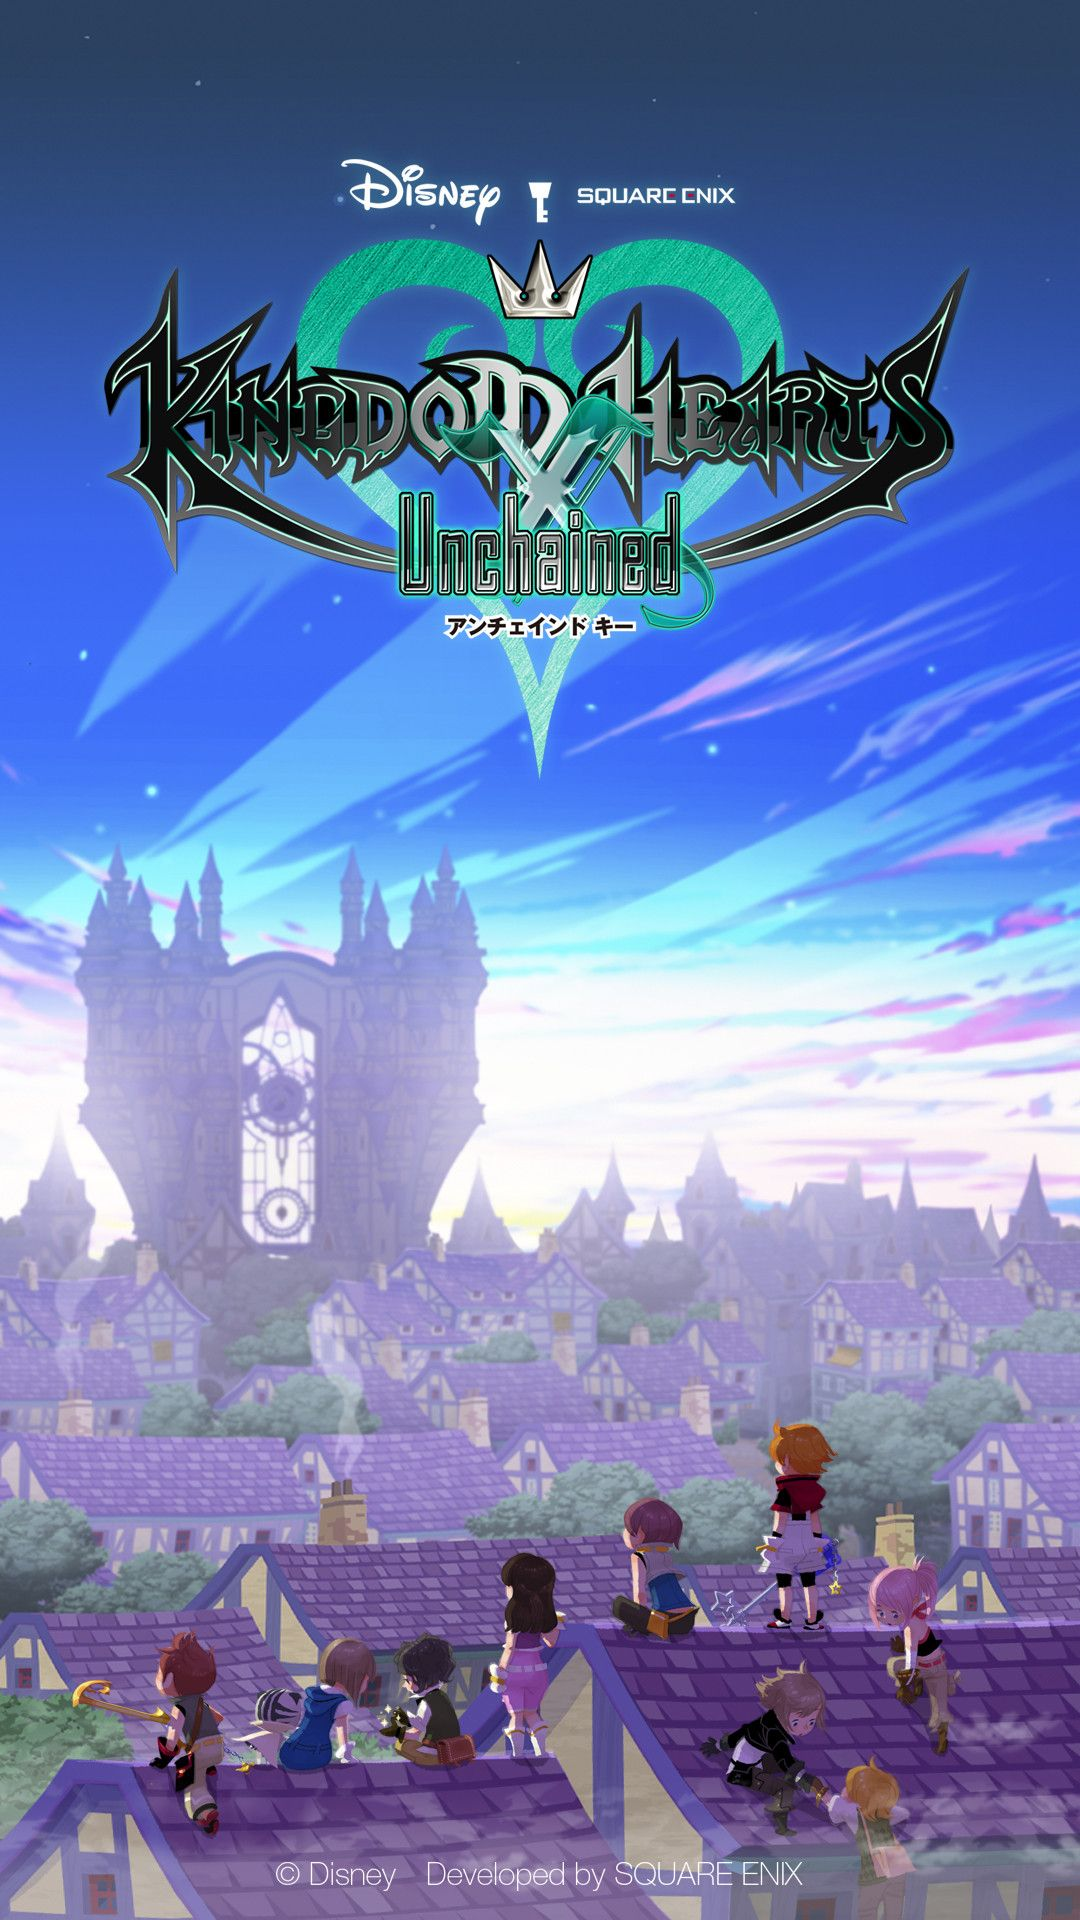 Kingdom Hearts Wallpaper Iphone X In 2020 Kingdom Hearts Wallpaper Roxas Kingdom Hearts Kingdom Hearts